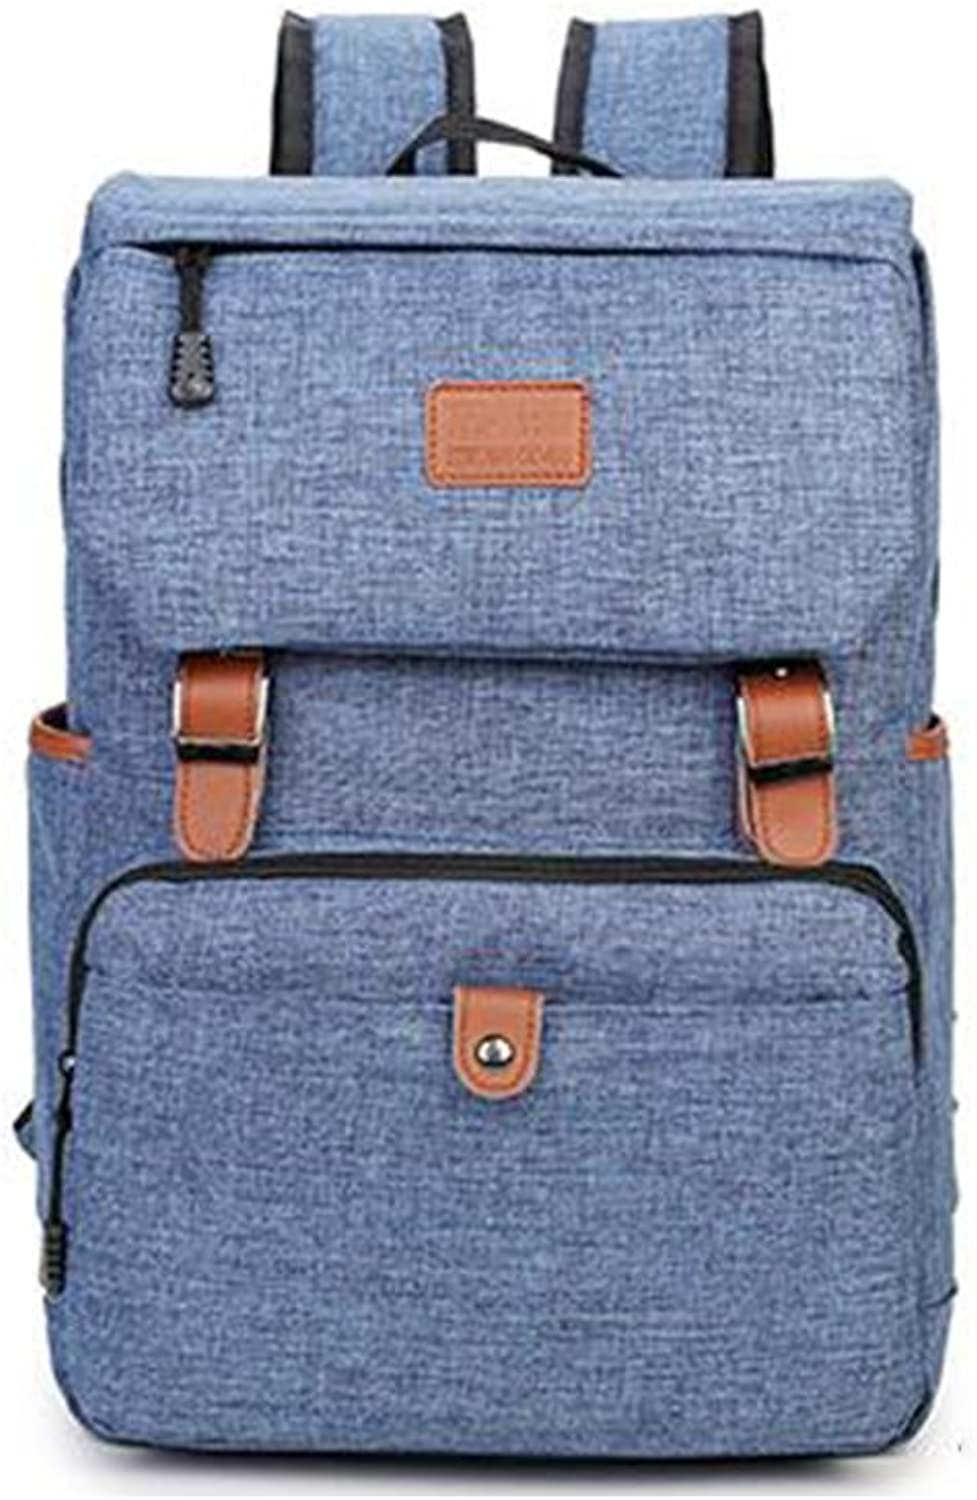 SUN Computer Backpack Student Travel Leisure Male Canvas 15 Inch Computer (color   bluee)